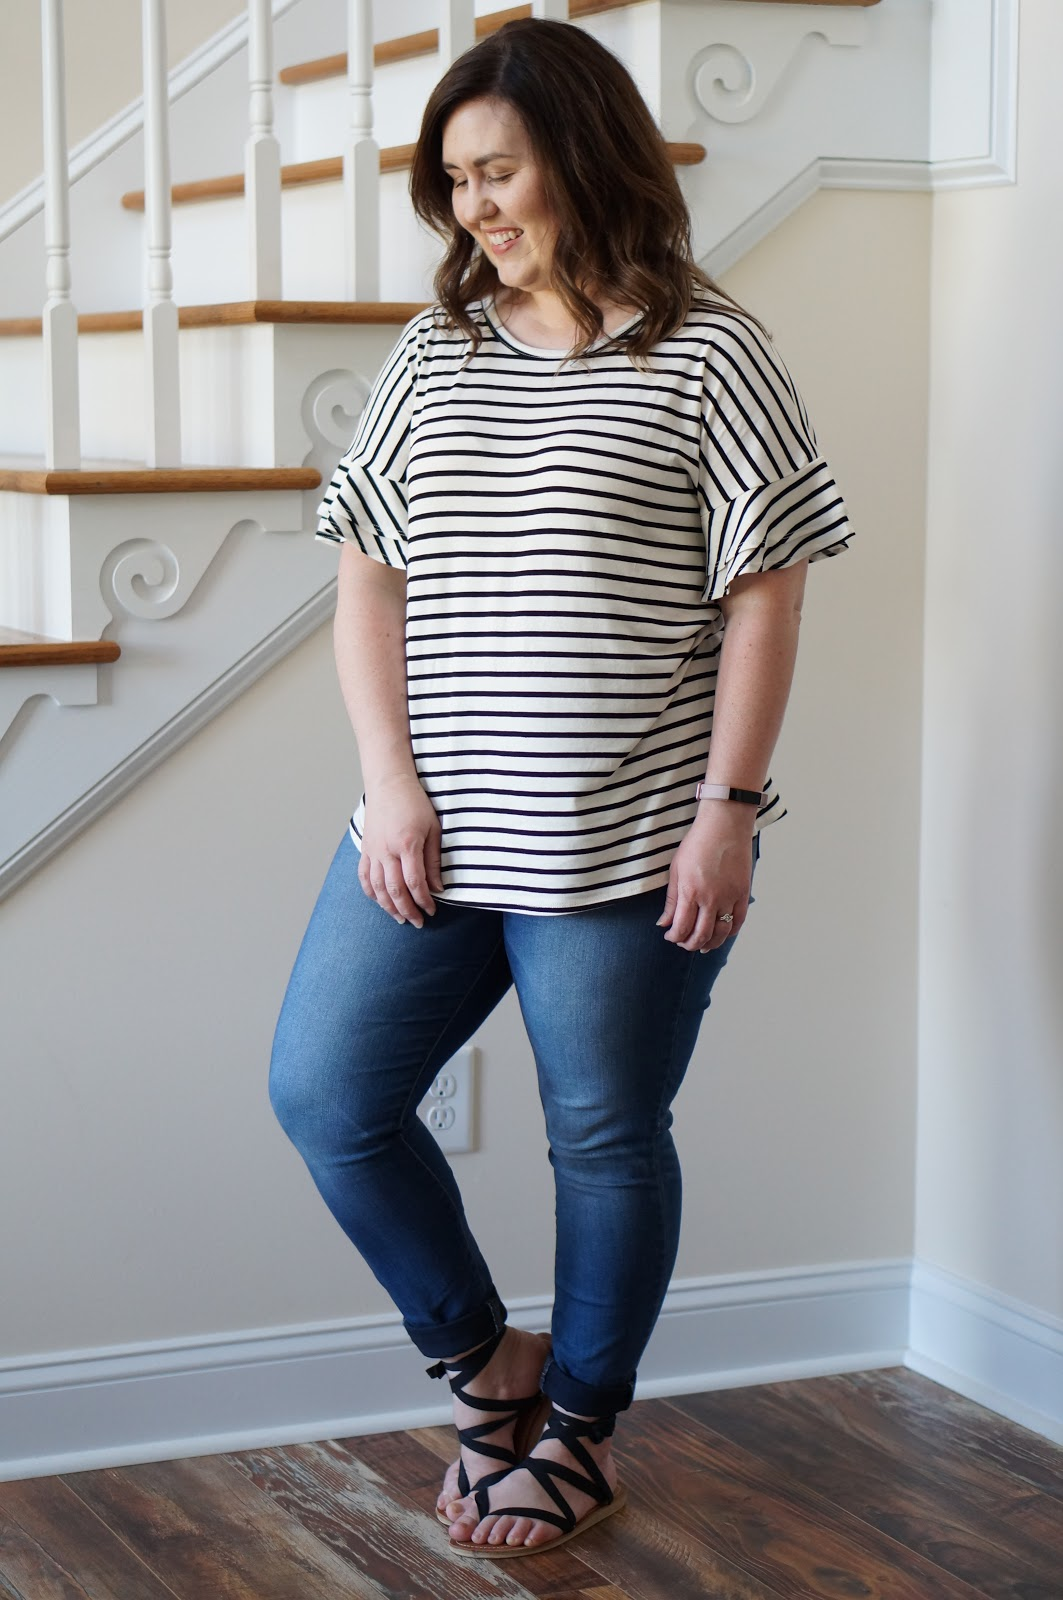 Popular North Carolina style blogger Rebecca Lately shares her new favorite striped top from The Flourish Market.  Click here to check it out!